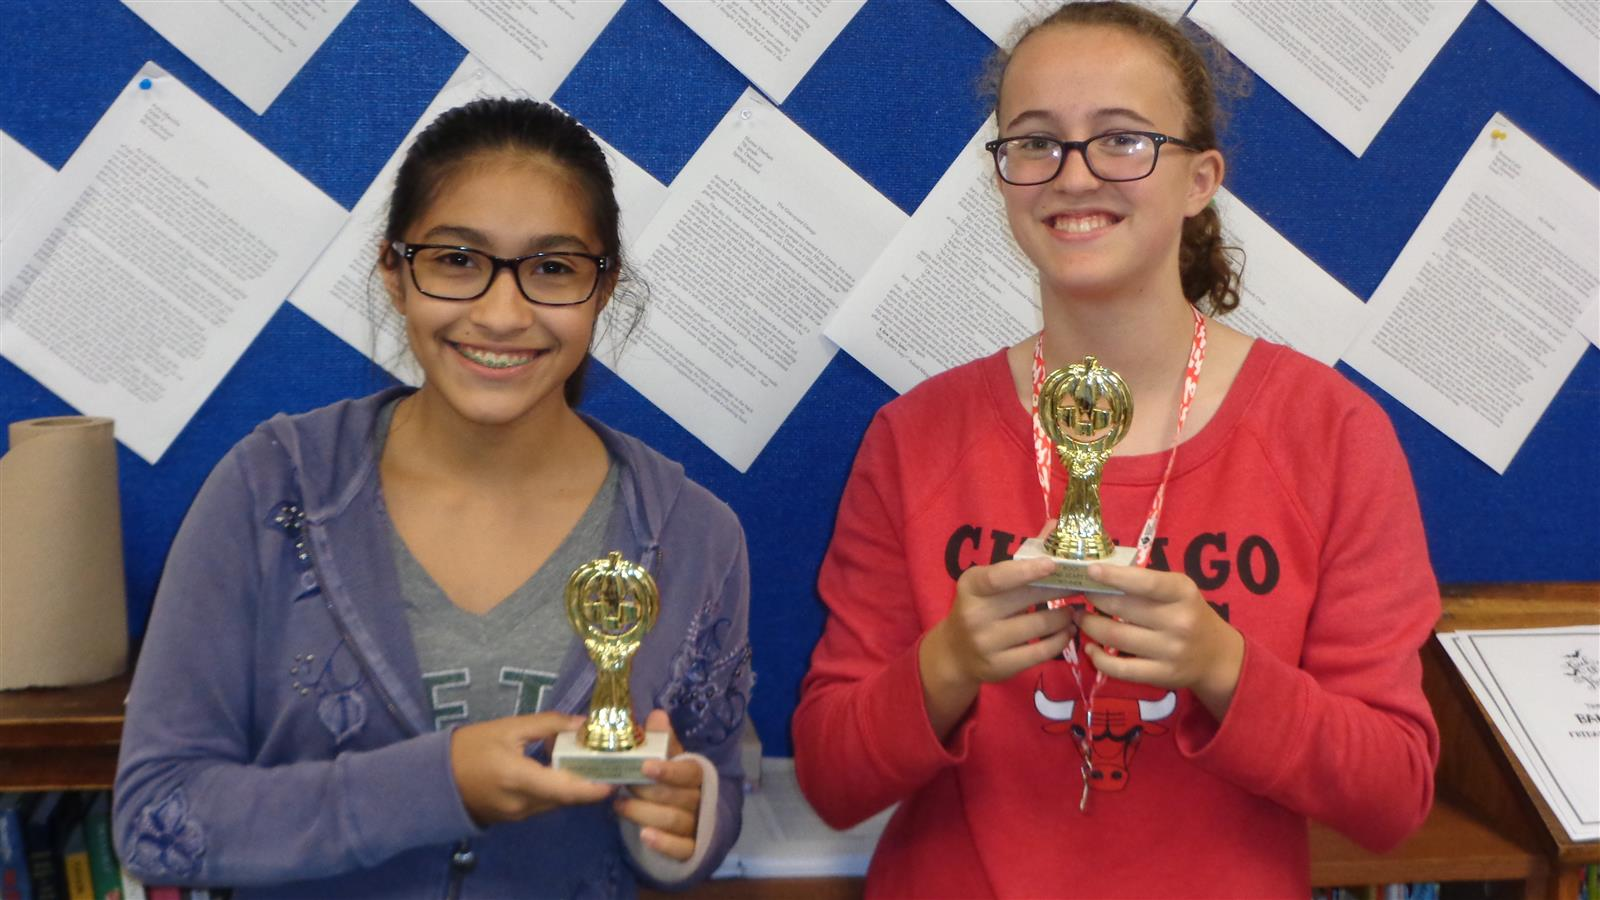 Students Win Prizes in The Independent's Spooky Story Contest